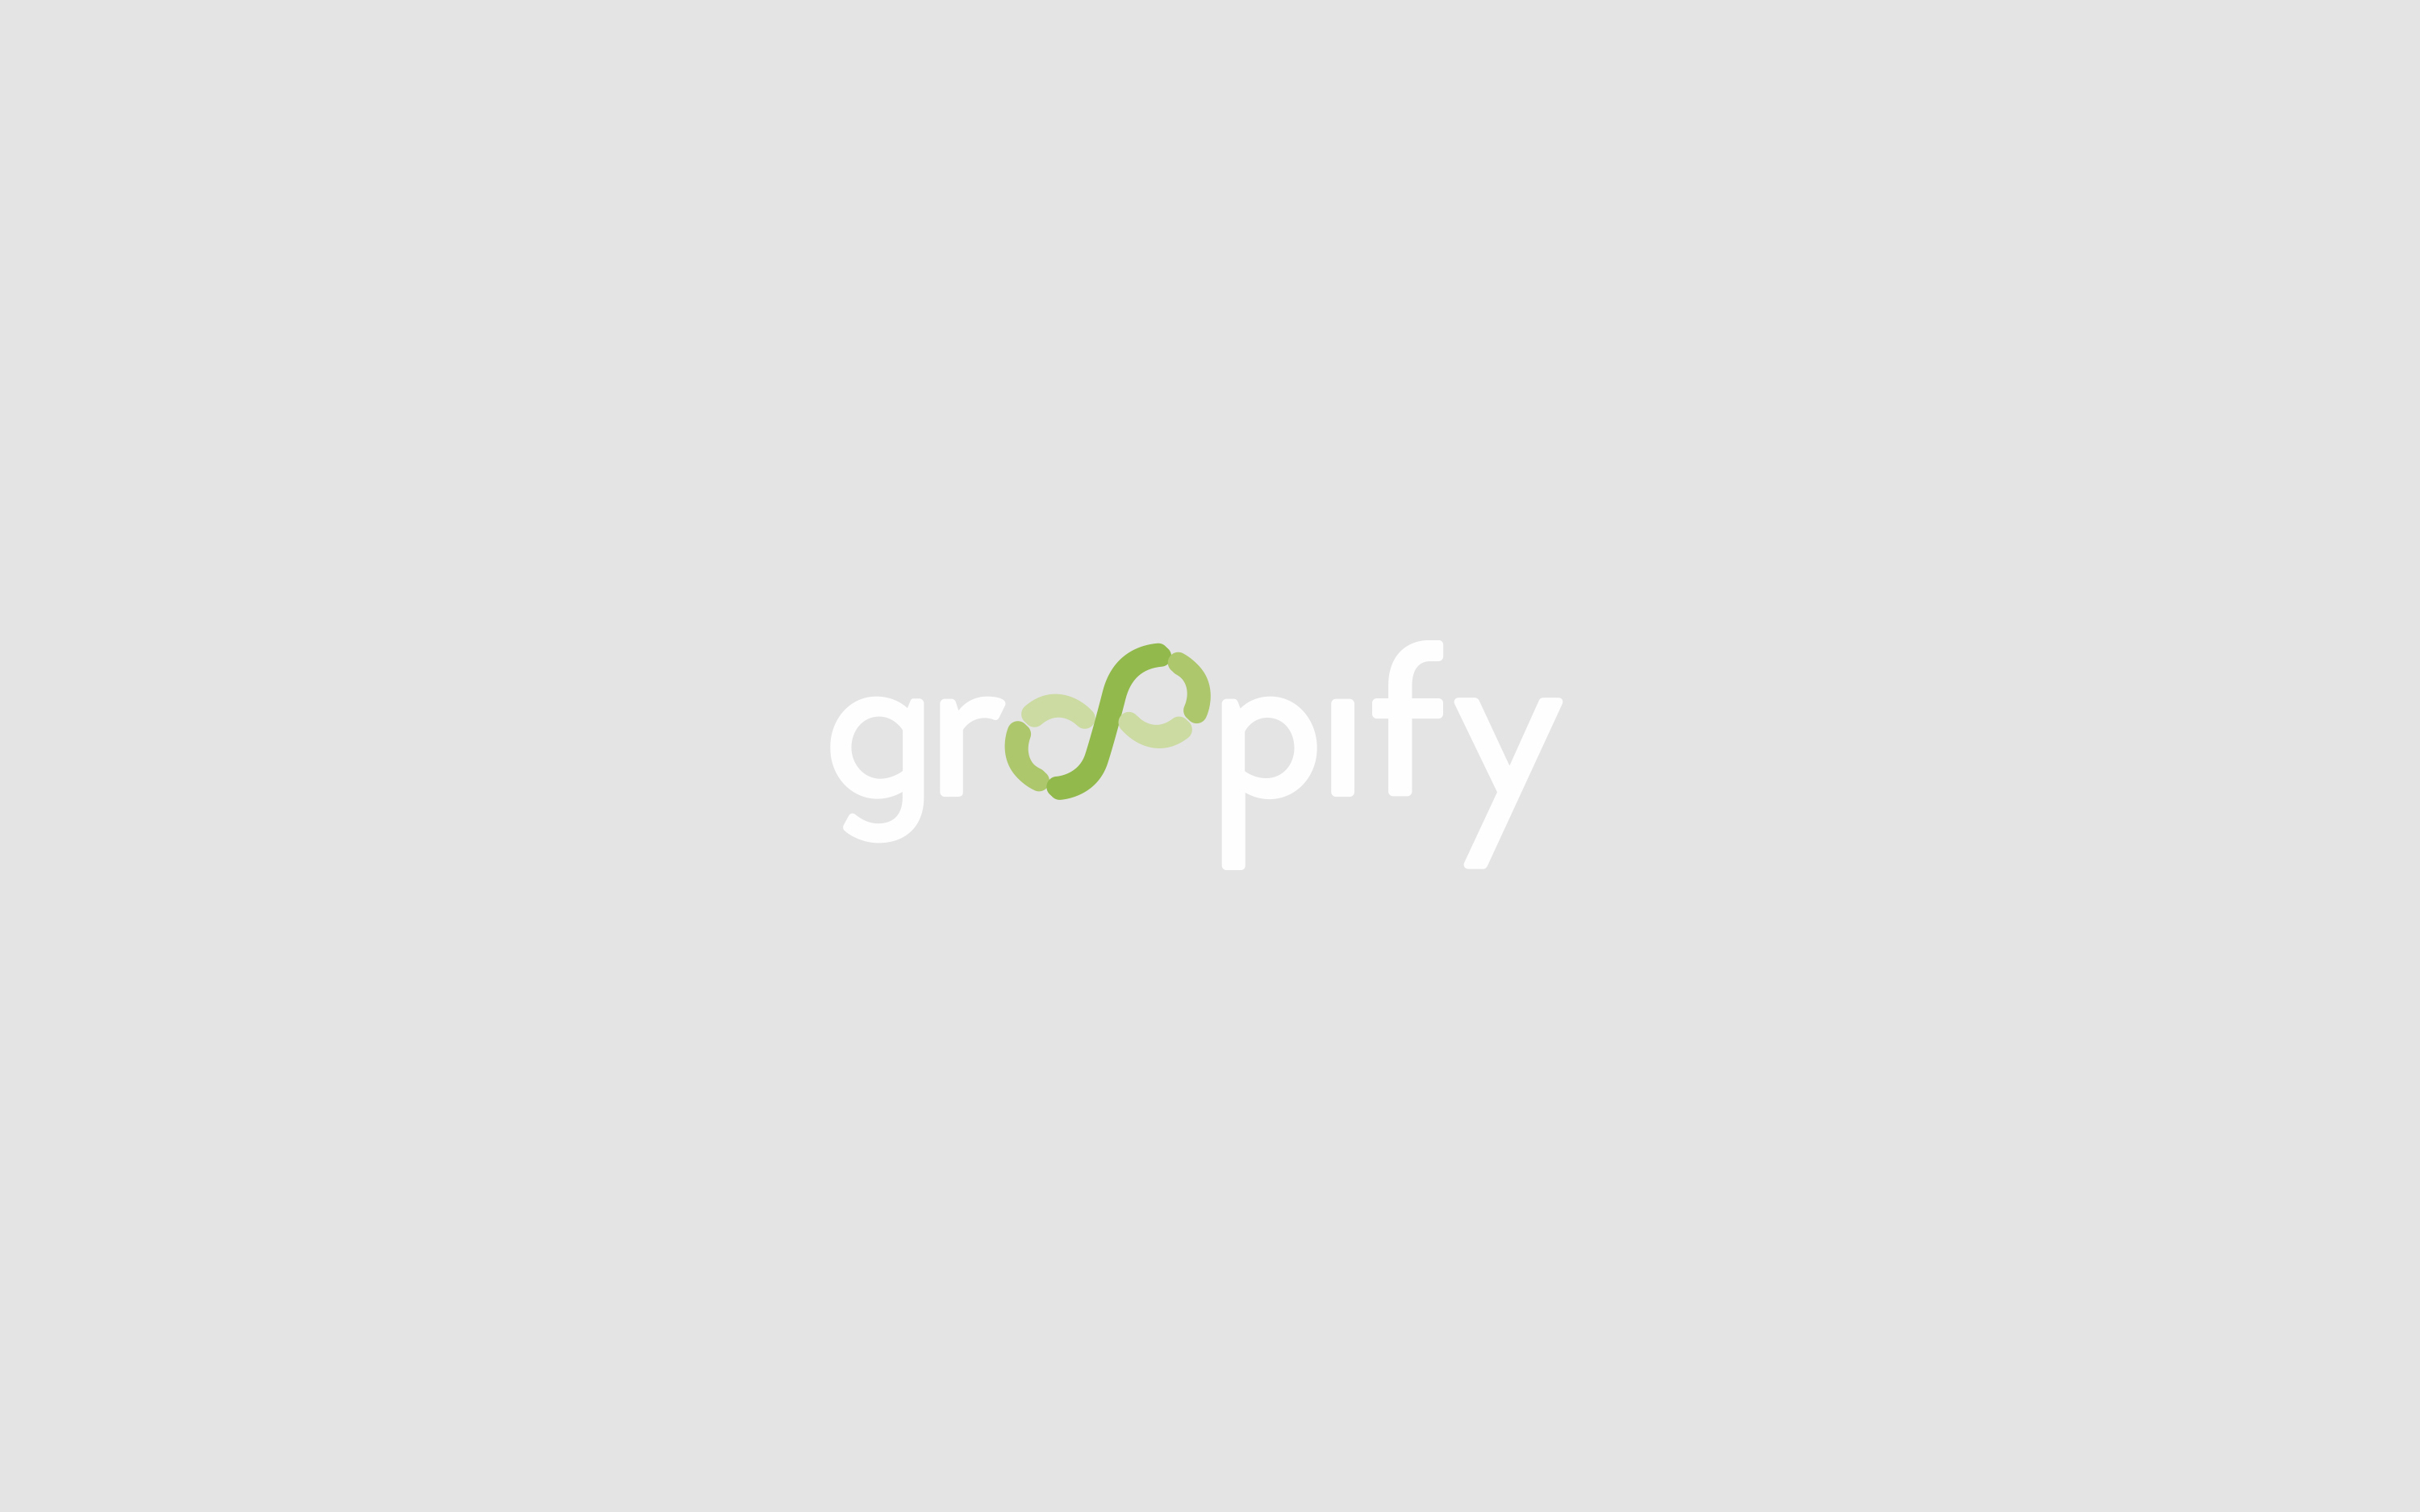 groopify_2